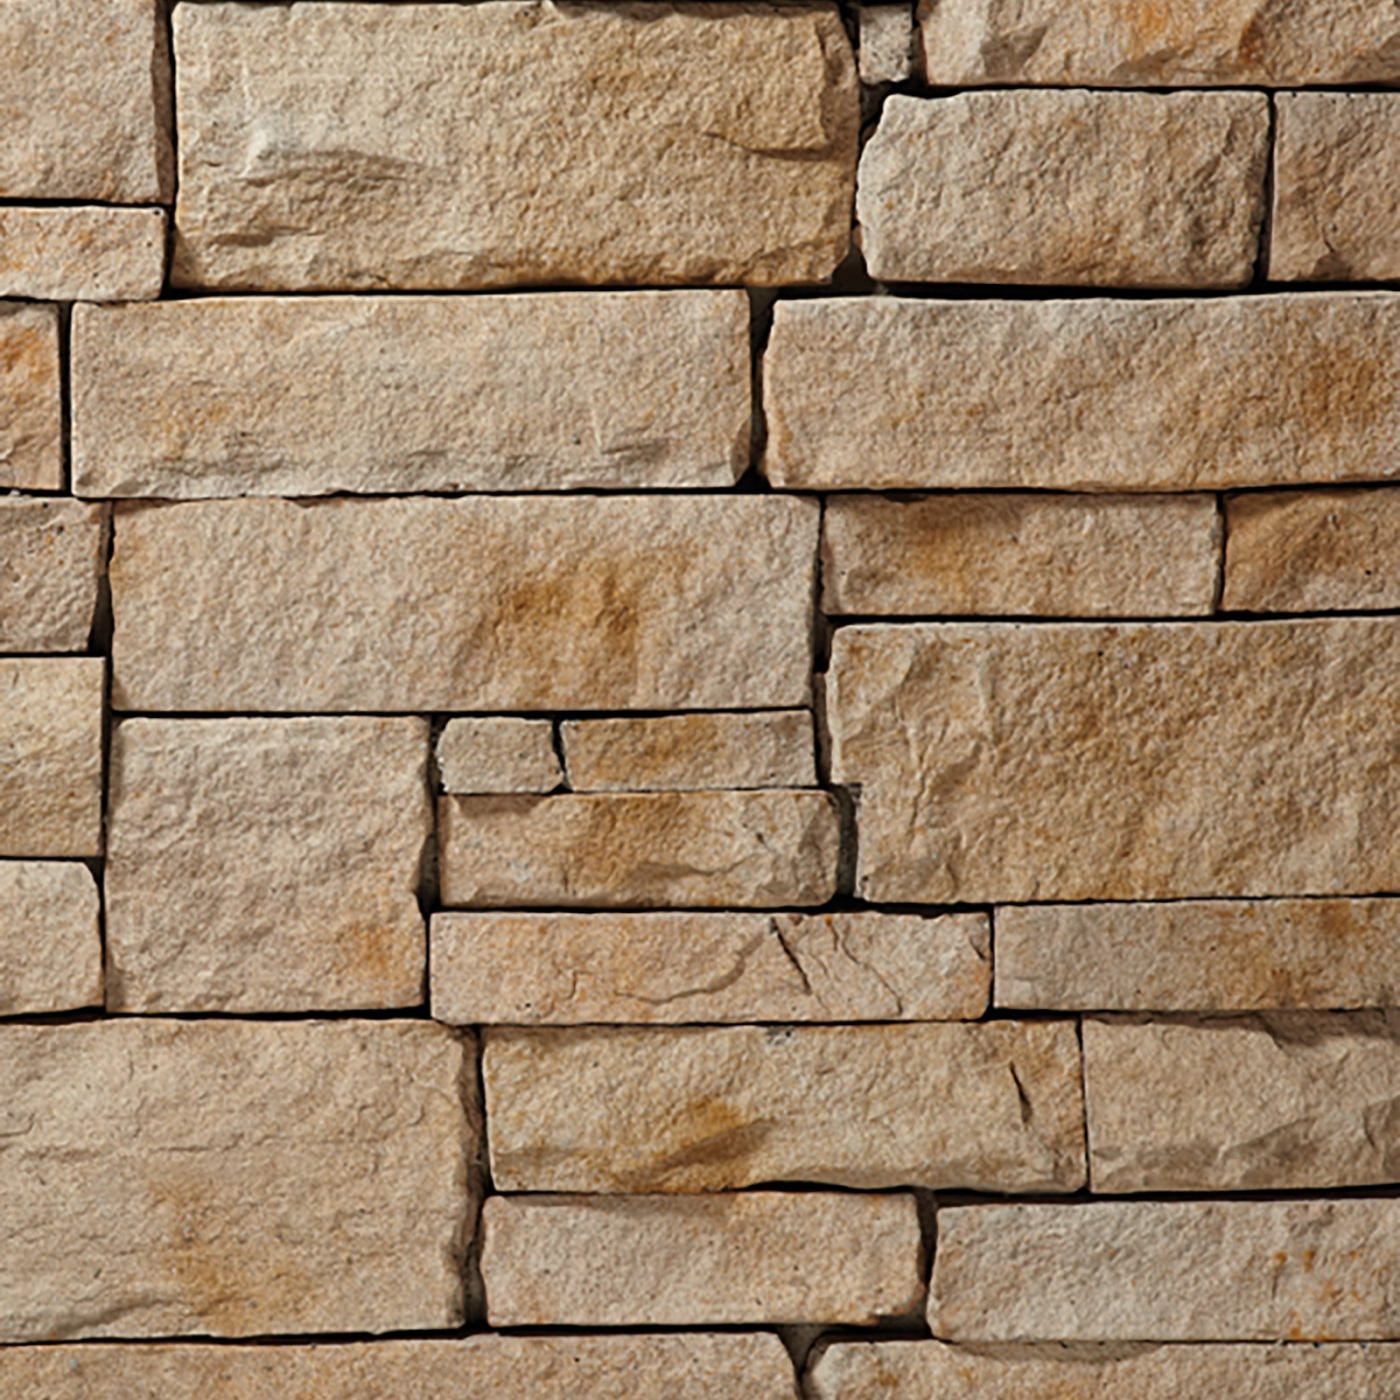 Sandstone Stripstone Stone Veneer from Environmental StoneWorks